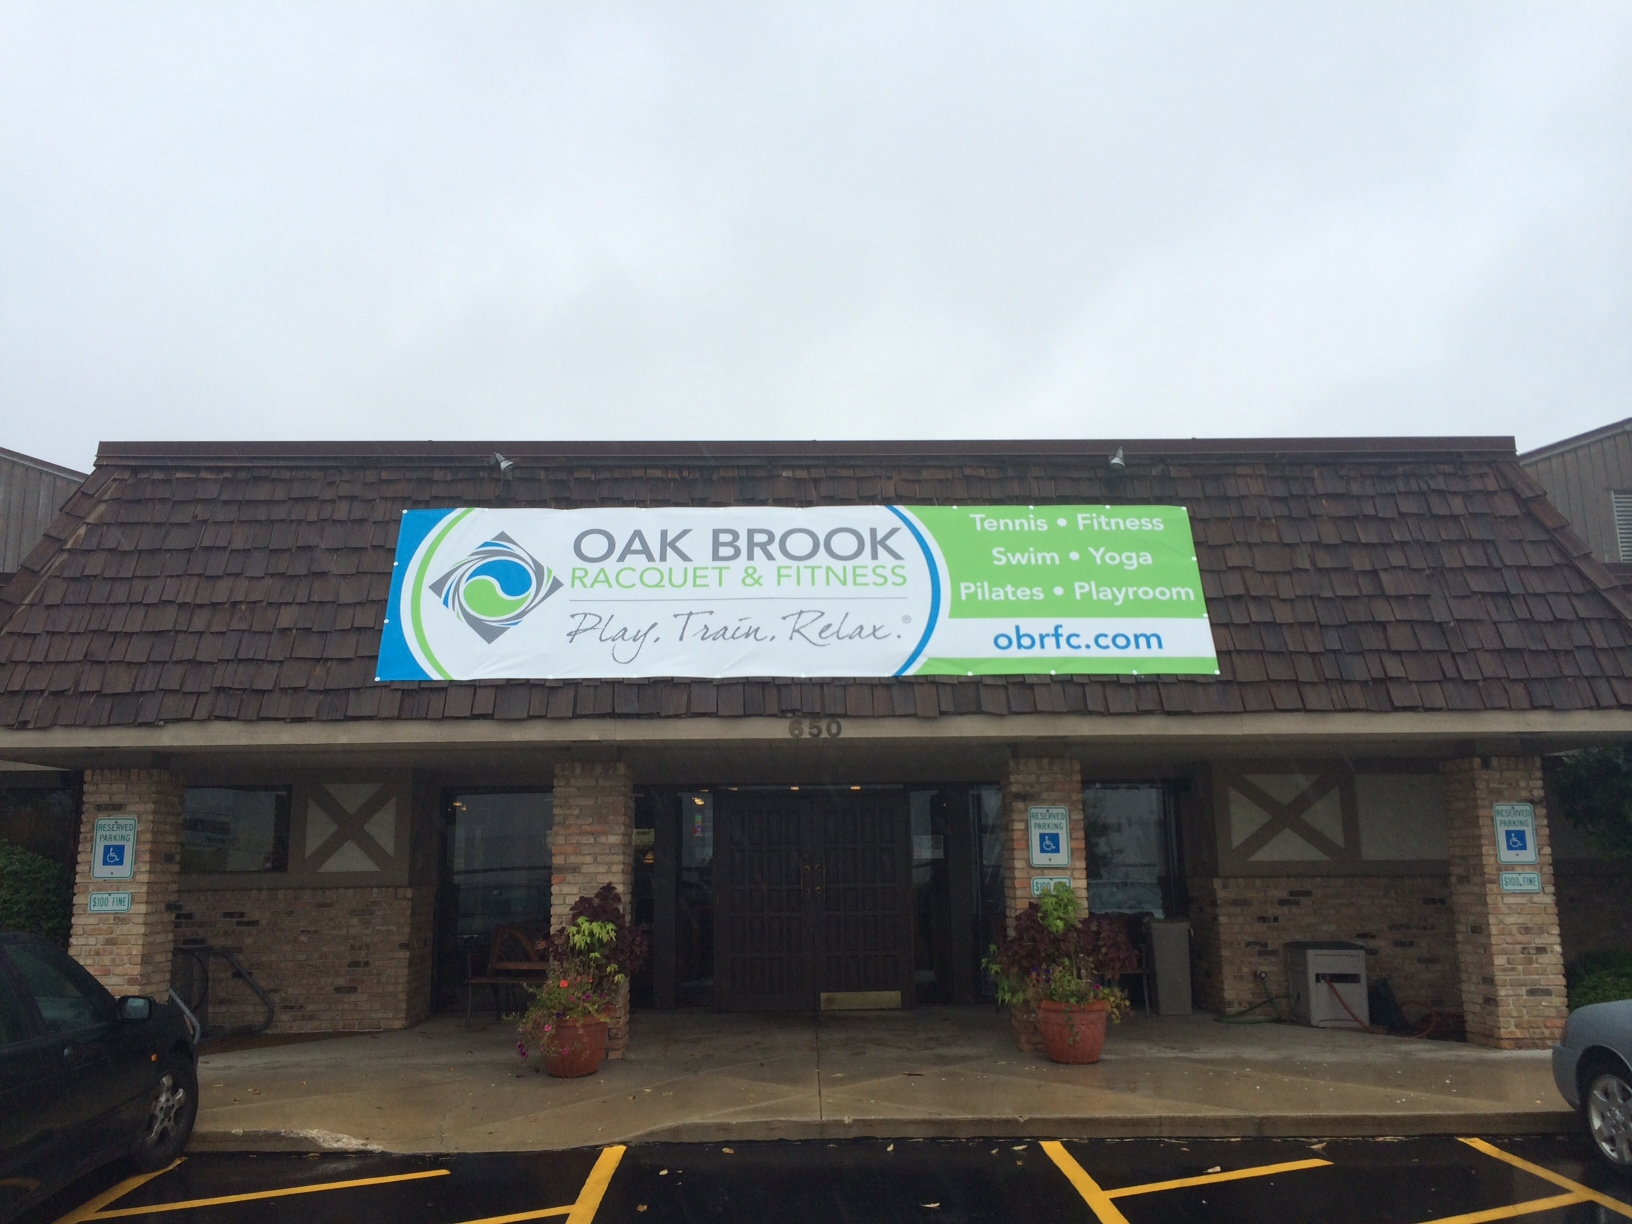 Oak Brook Racquet & Fitness Banner